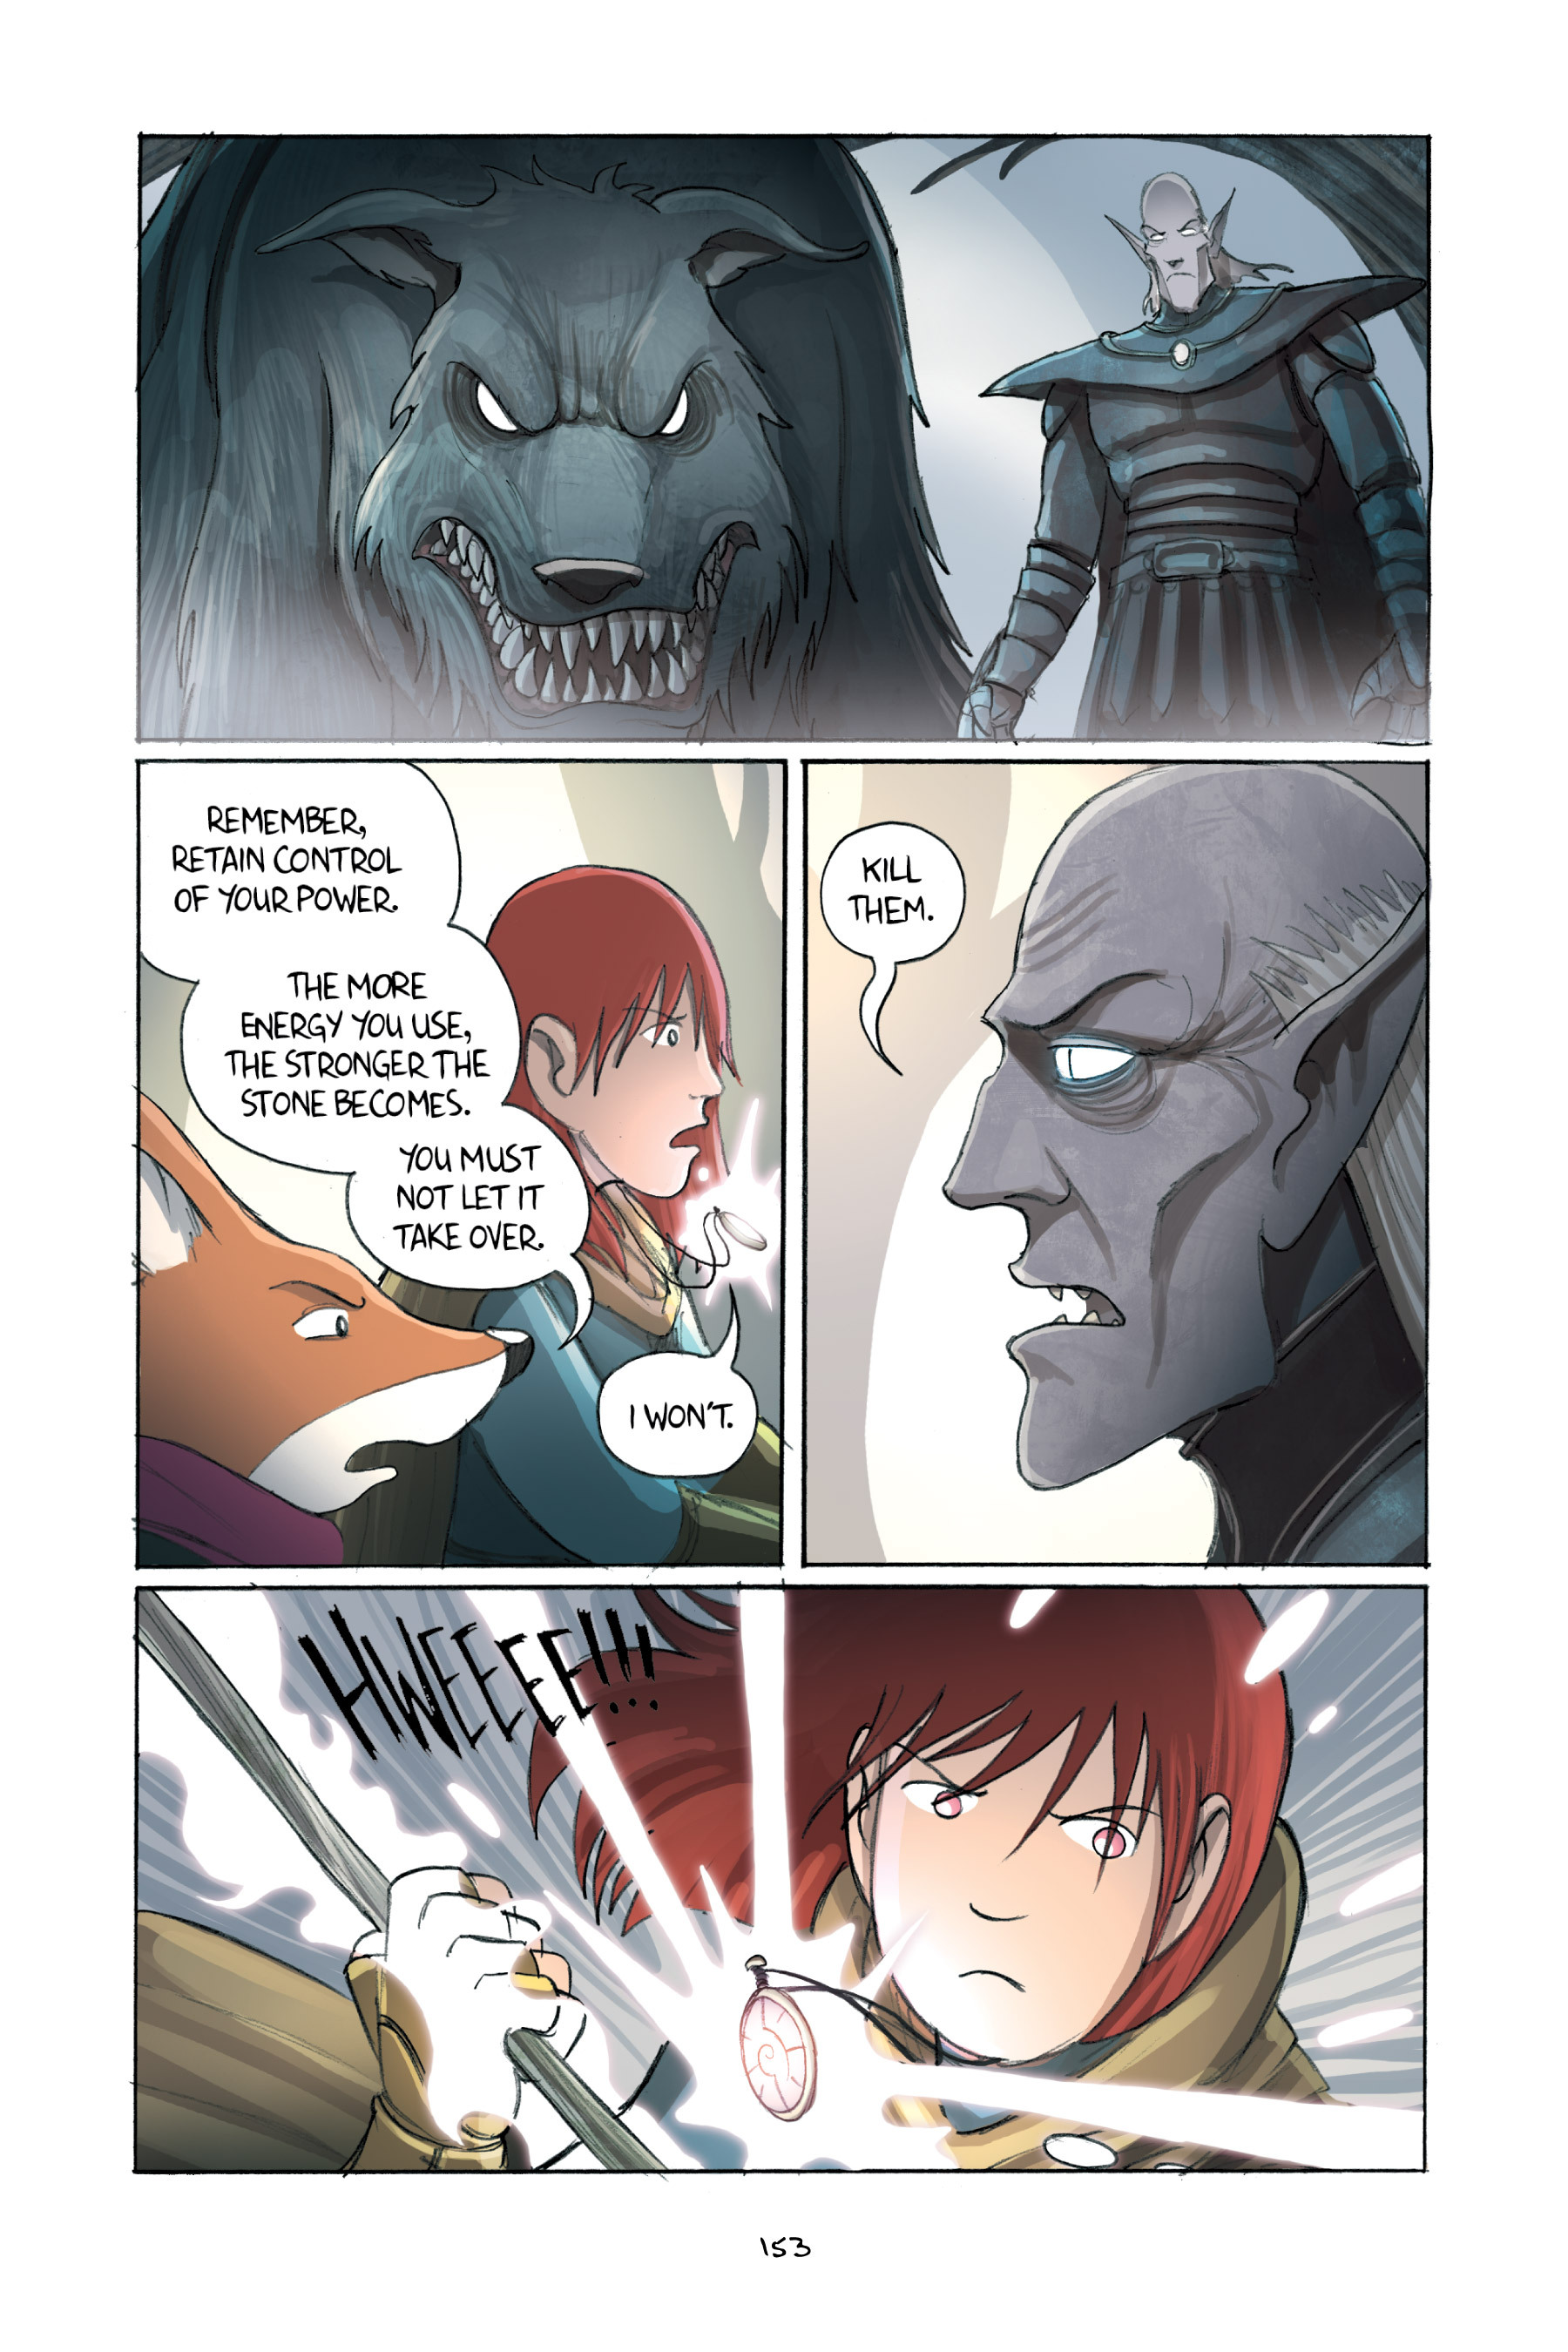 Read online Amulet comic -  Issue #2 - 152